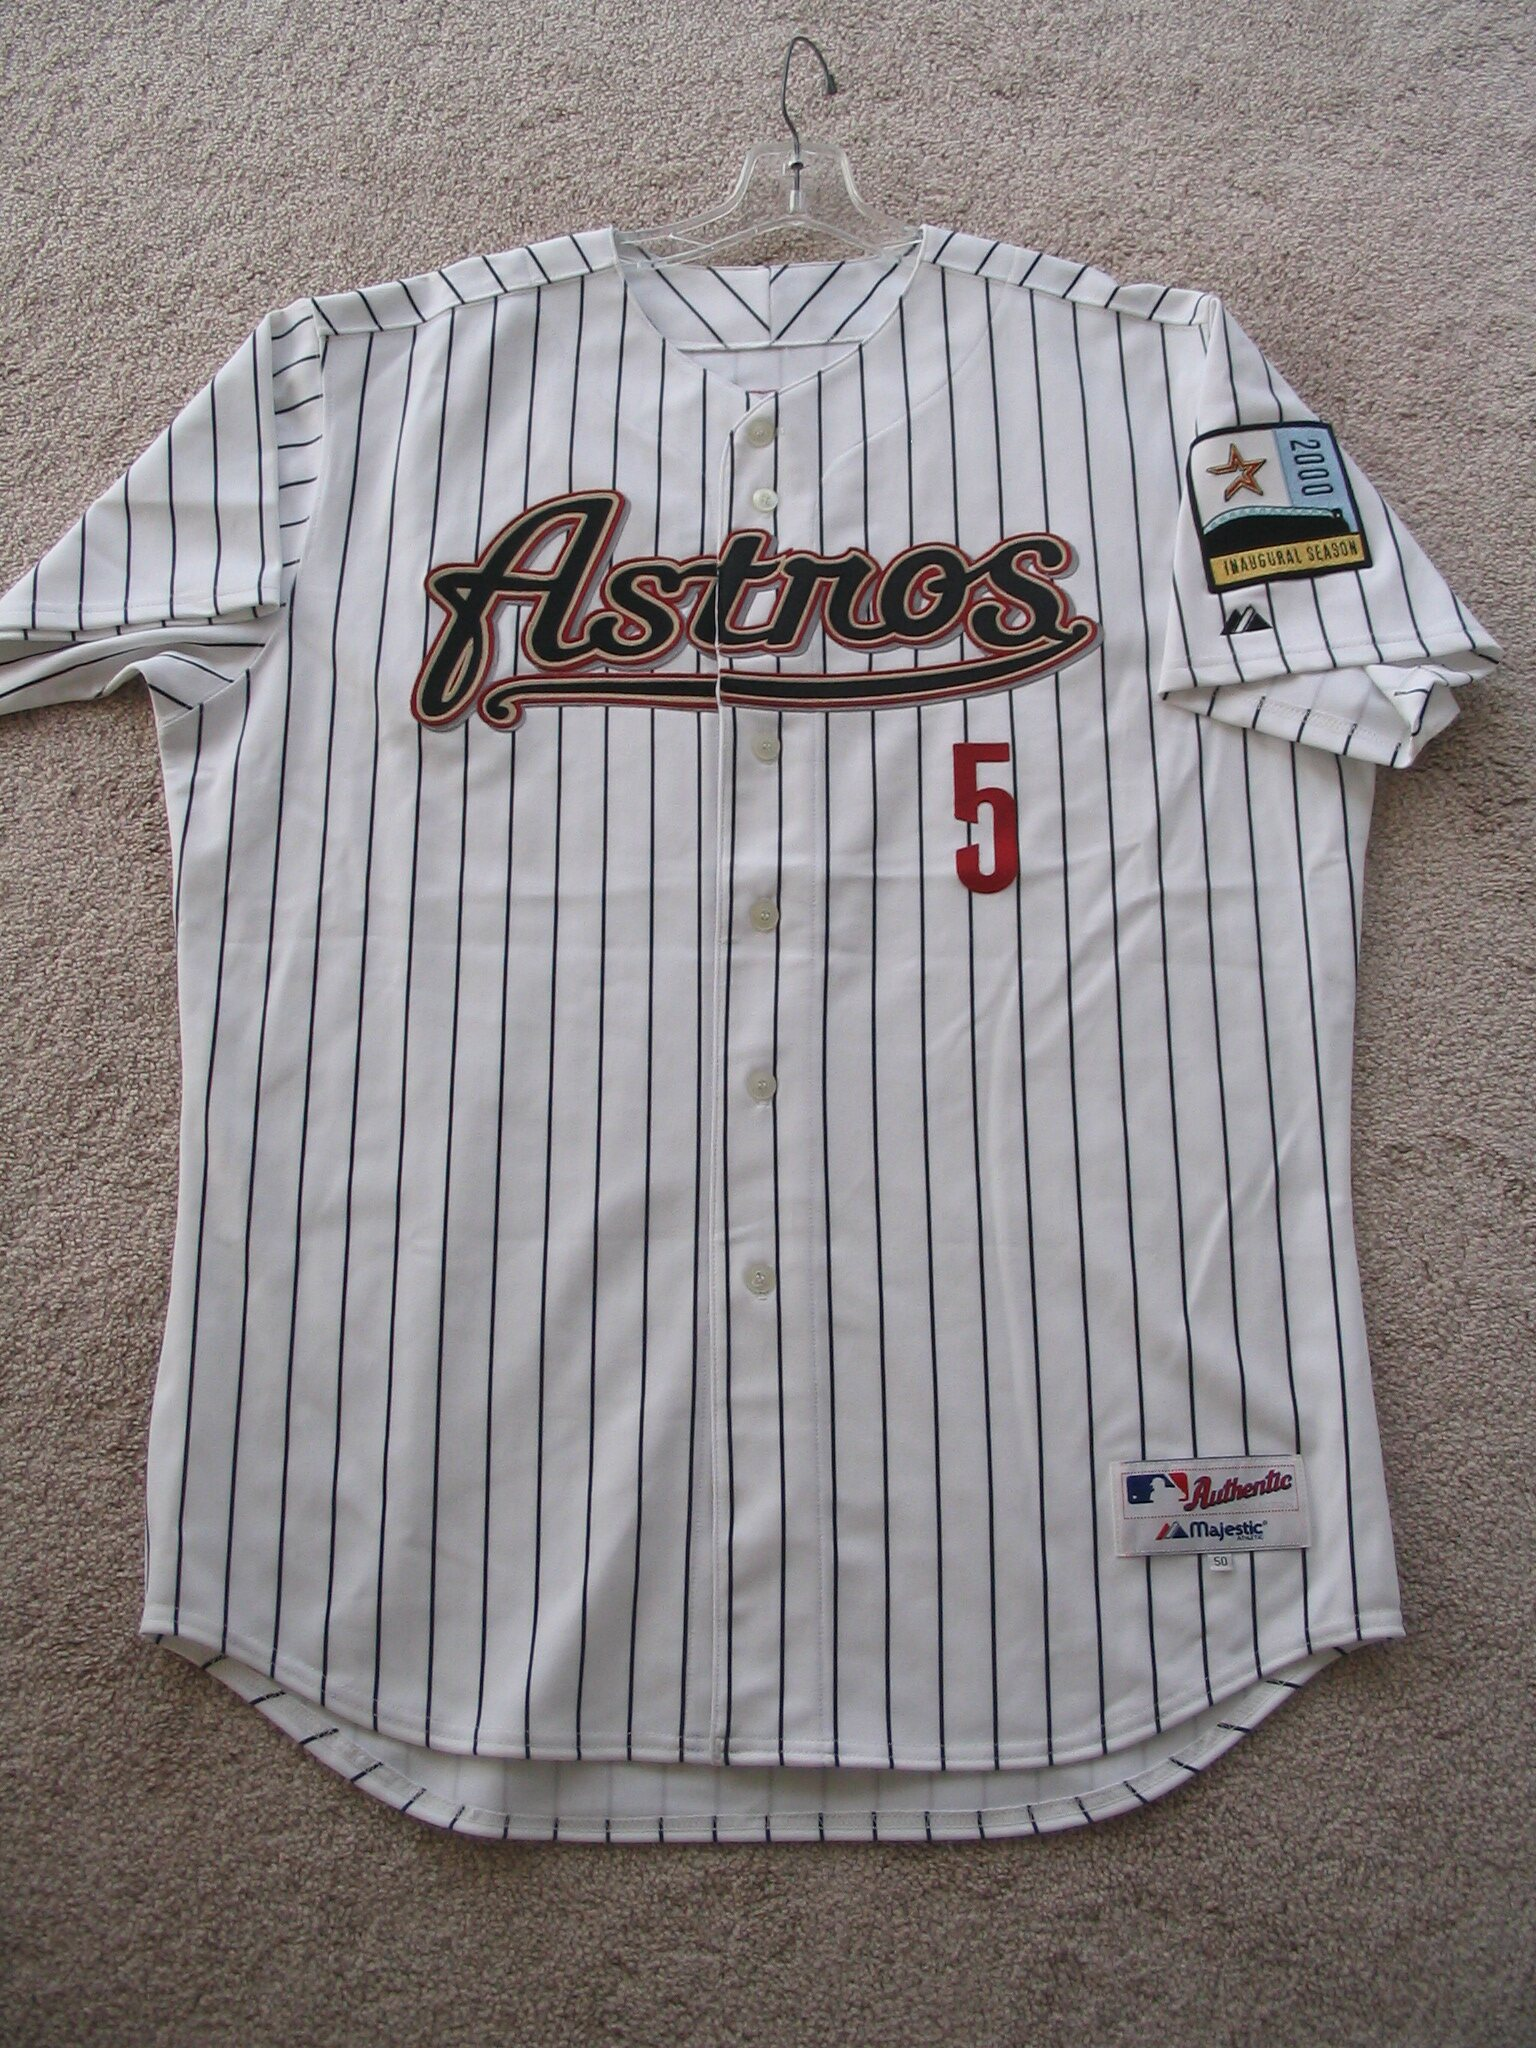 Jeff Bagwell 2000 Home Pinstripe Jersey with Autograph